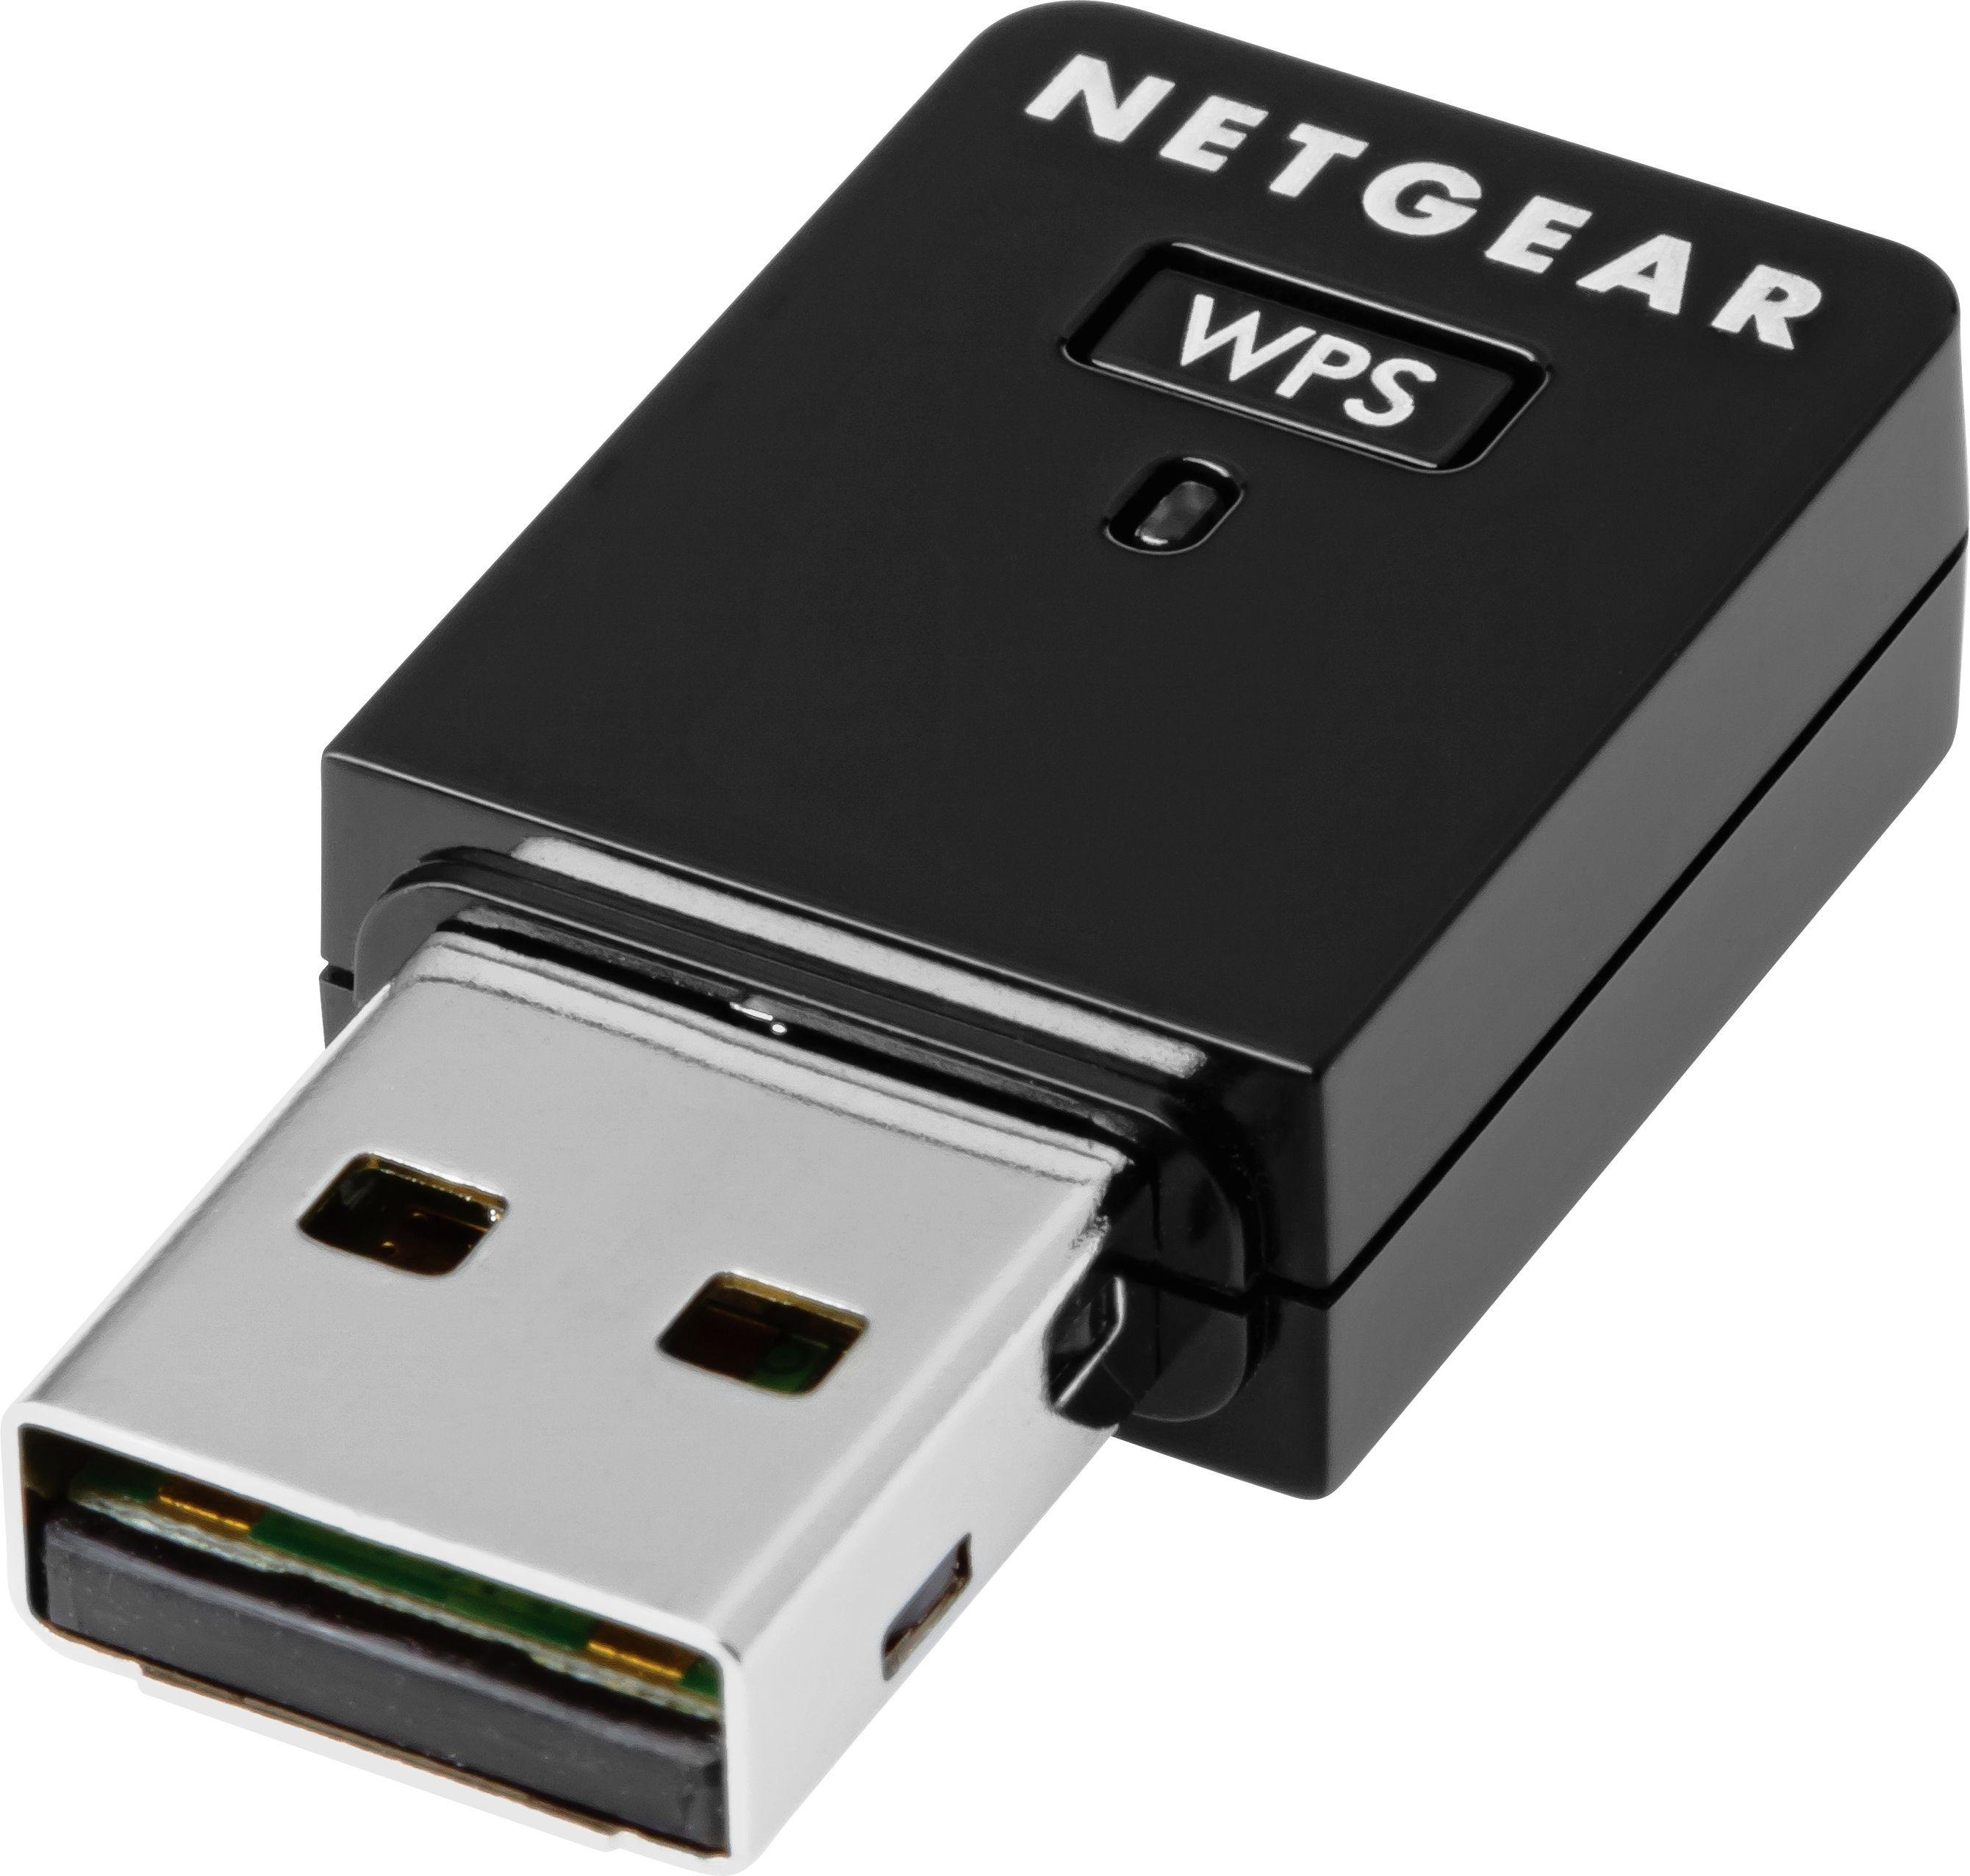 netgear-n300-wifi-usb-mini-adaptor